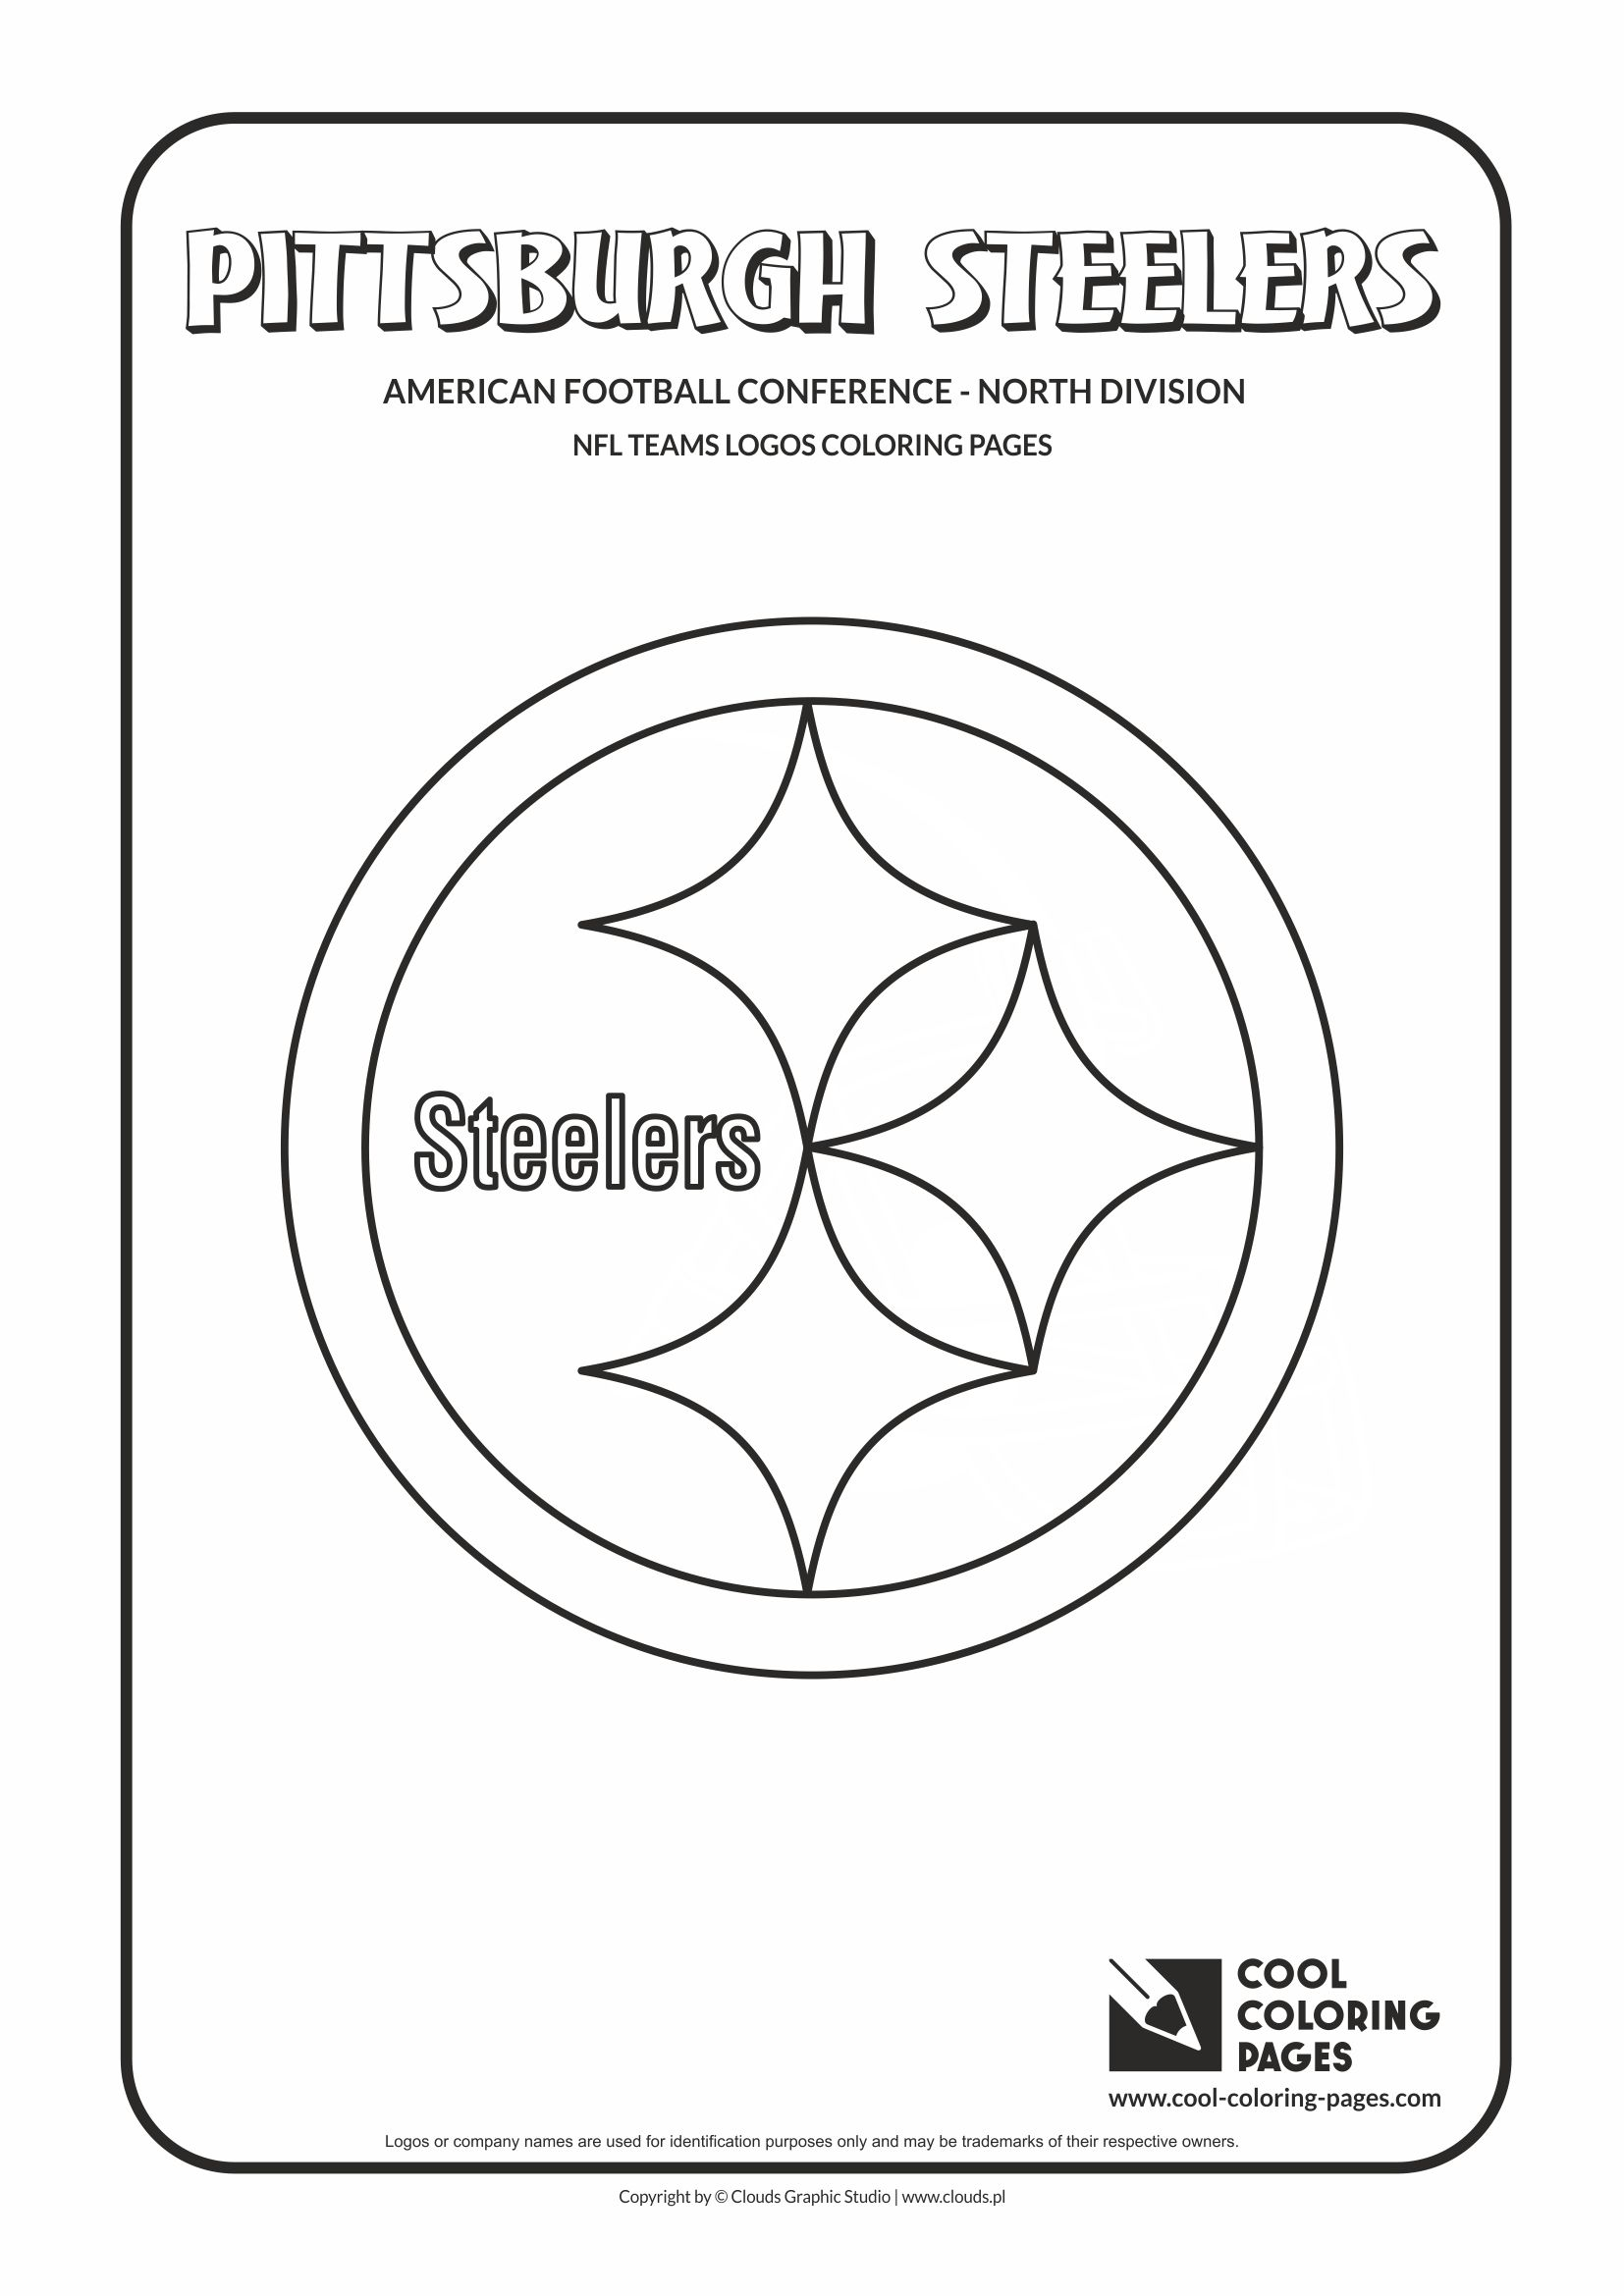 Cool Coloring Pages - NFL American Football Clubs Logos - American Football Conference - North Division / Pittsburgh Steelers logo / Coloring page with Pittsburgh Steelers logo